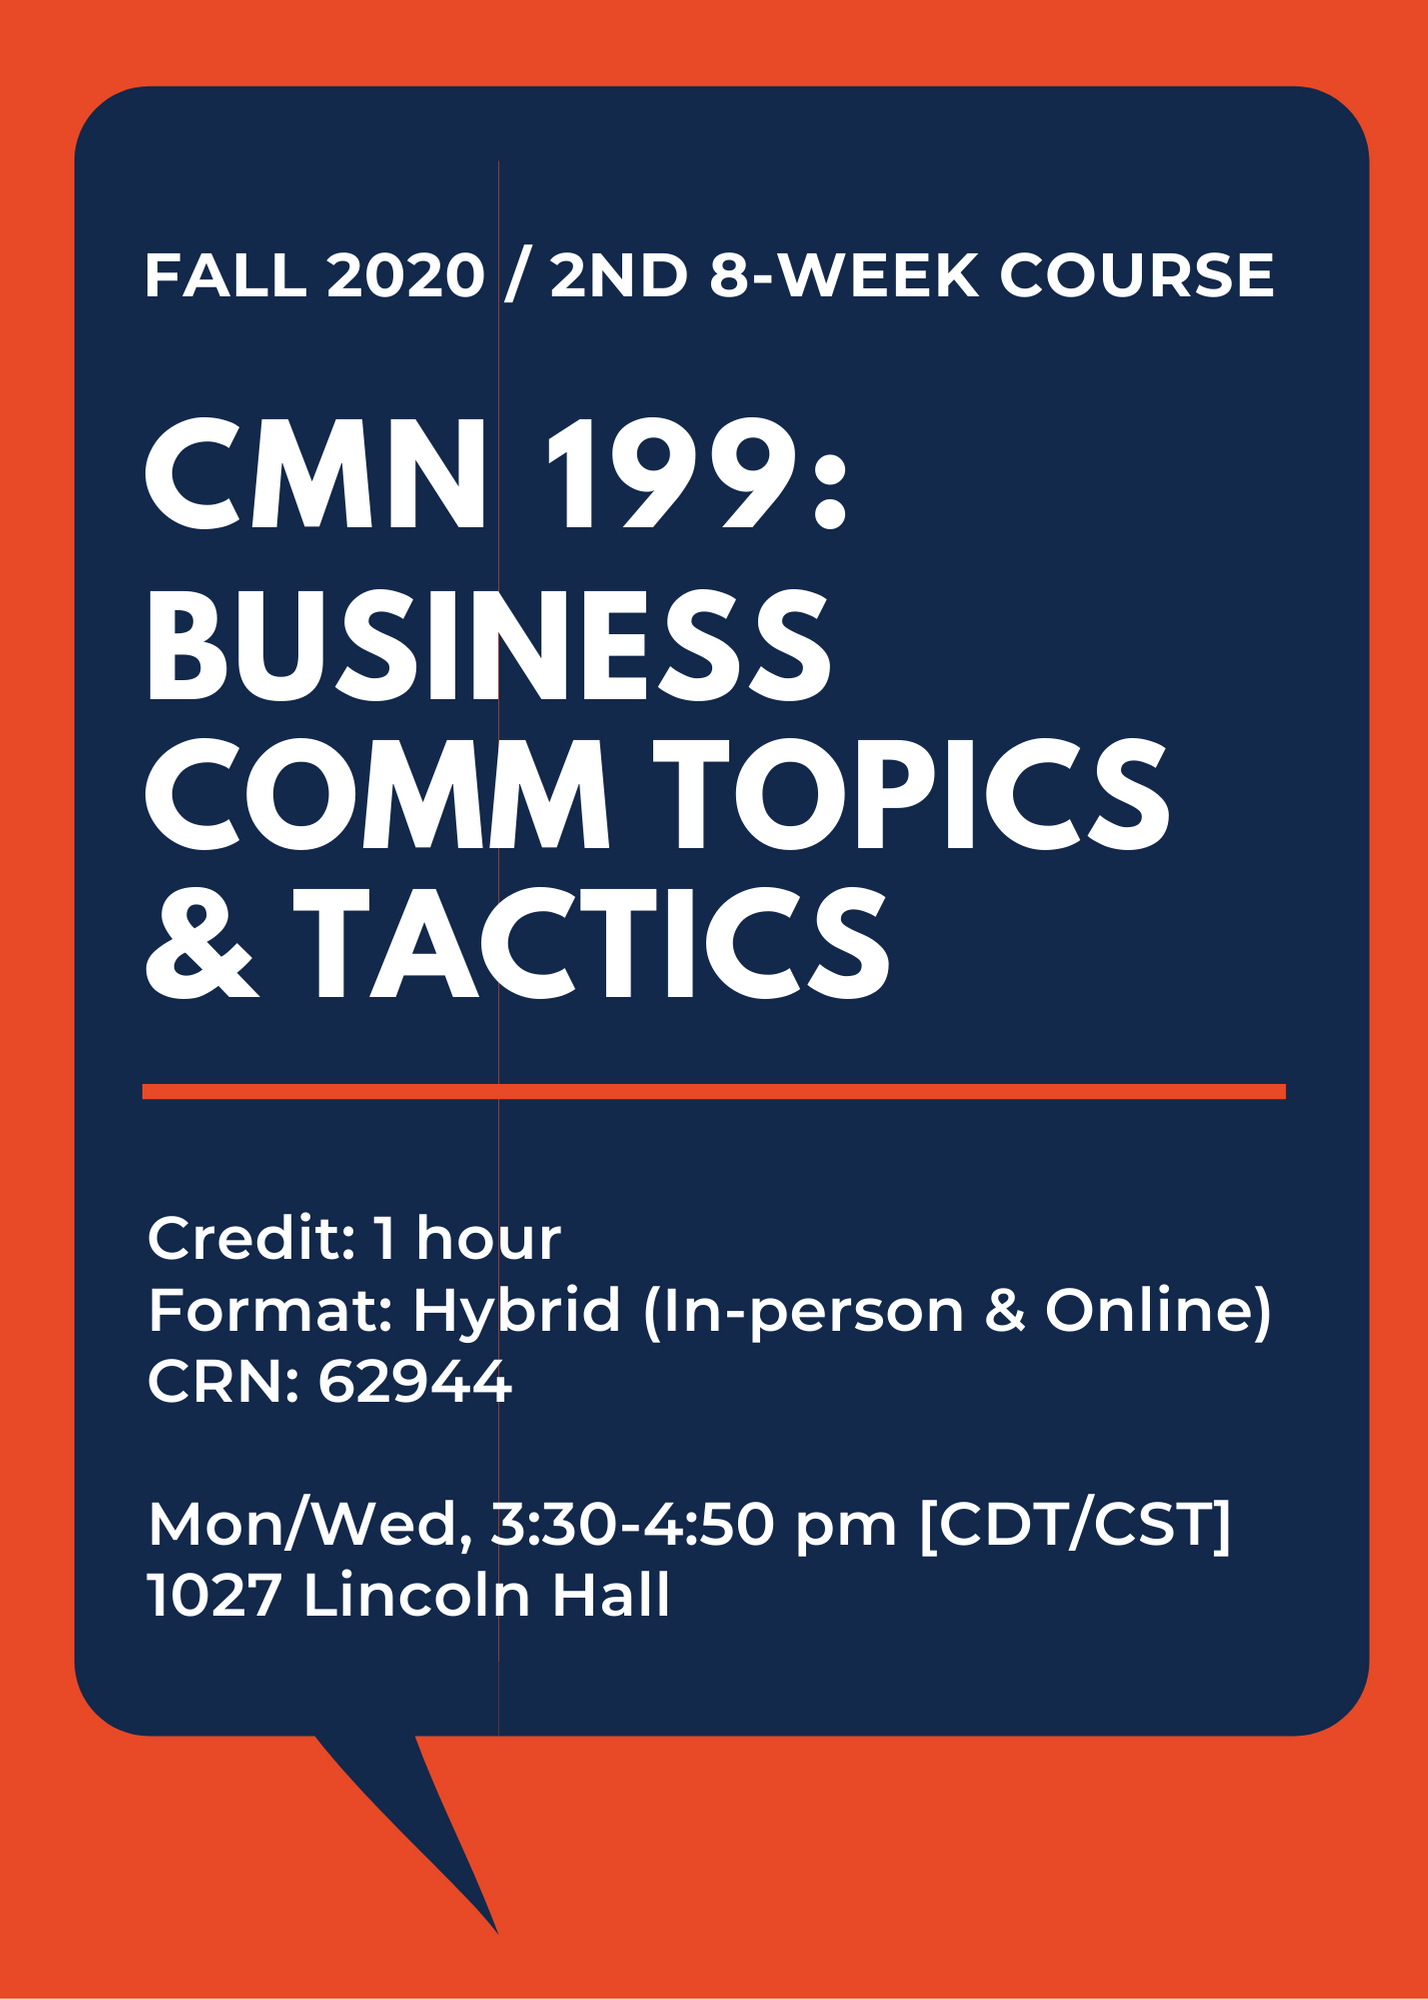 CMN 199: Business Communication Topics & Tactics